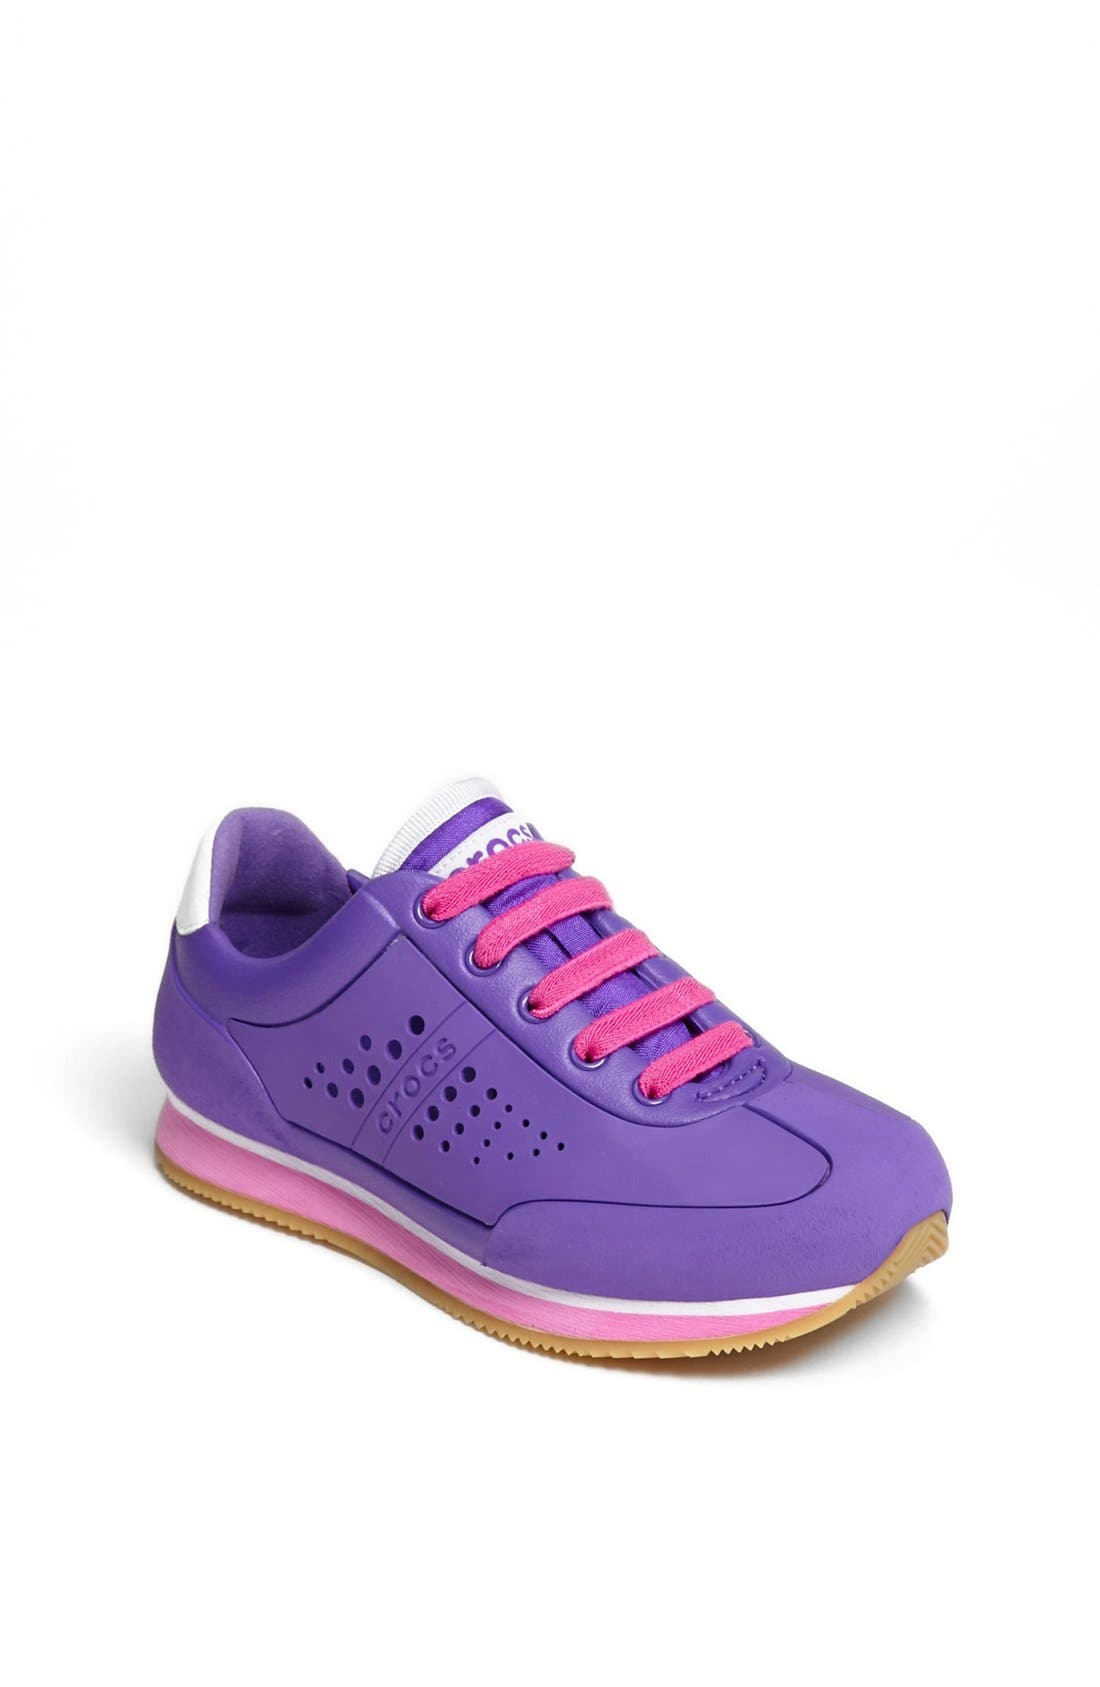 Main Image - CROCS™ 'Retro' Sneaker (Little Kid & Big Kid)